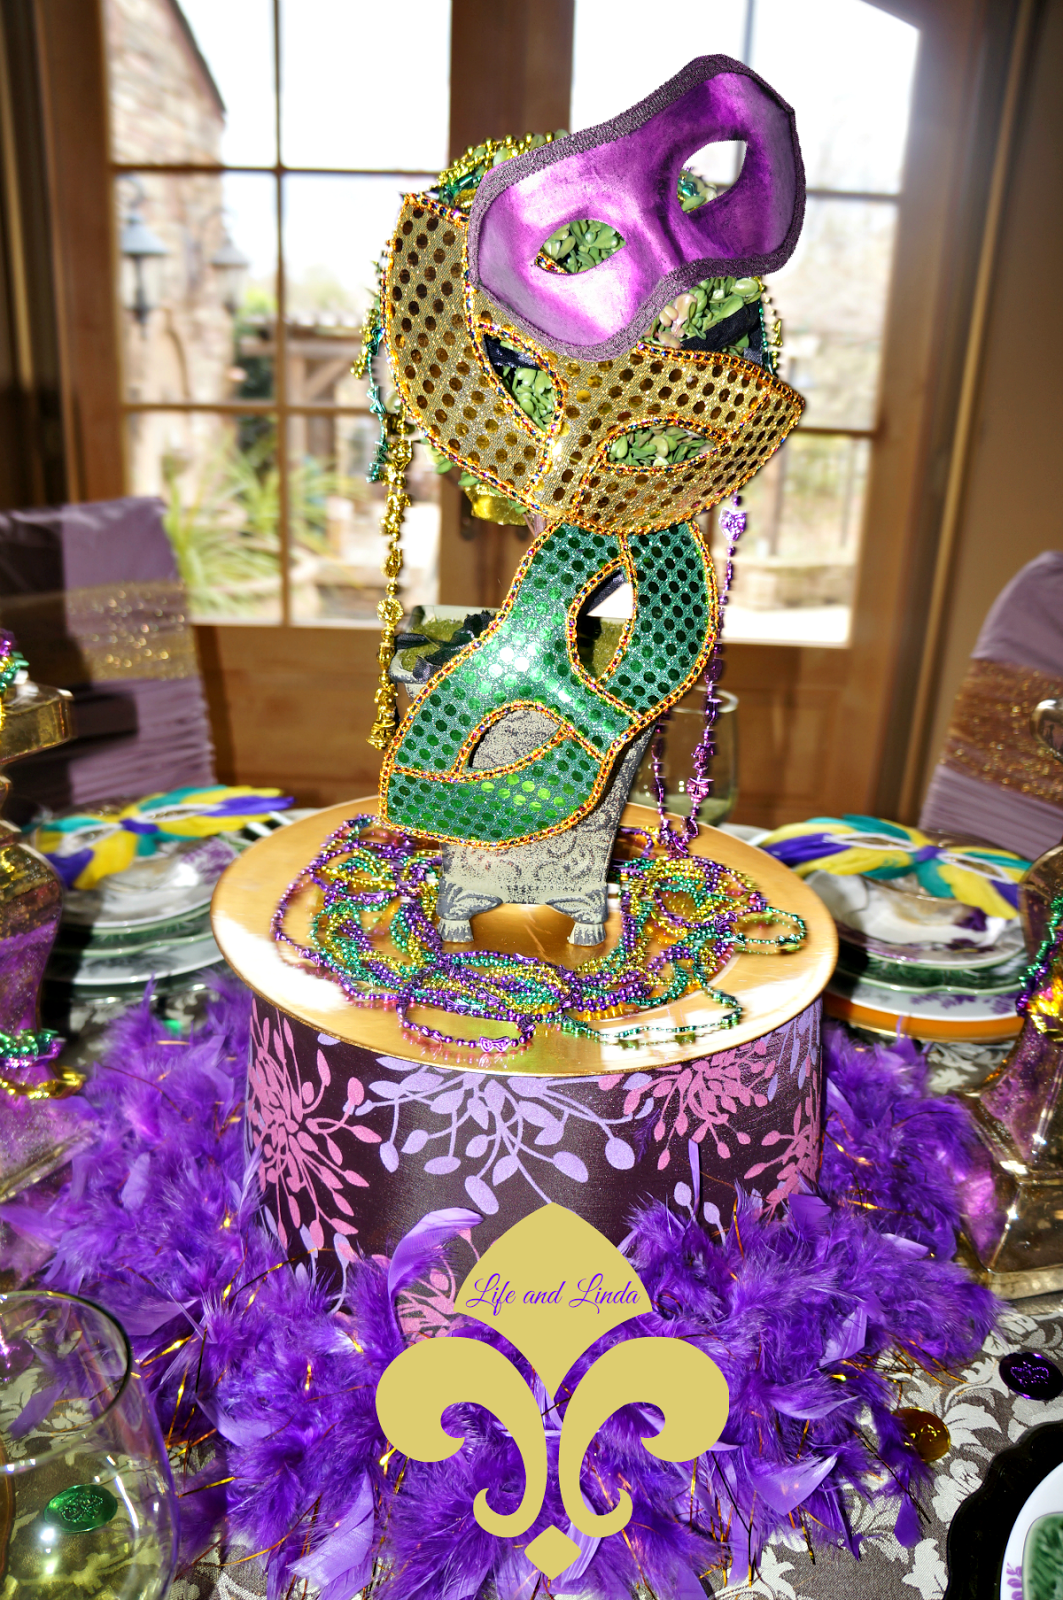 Shindigz has many colorful decorations centered around the Mardi Gras theme to help you out, including plates, drinking cups, seat place holders, centerpieces and more. For a fun, personalized look, try the Masquerade Personalized Centerpiece with Mask Confetti or for a simple, traditional look the Gleam N' Burst Centerpiece paired with the Printed Mardi Gras Table Runner is a great choice. We make it .